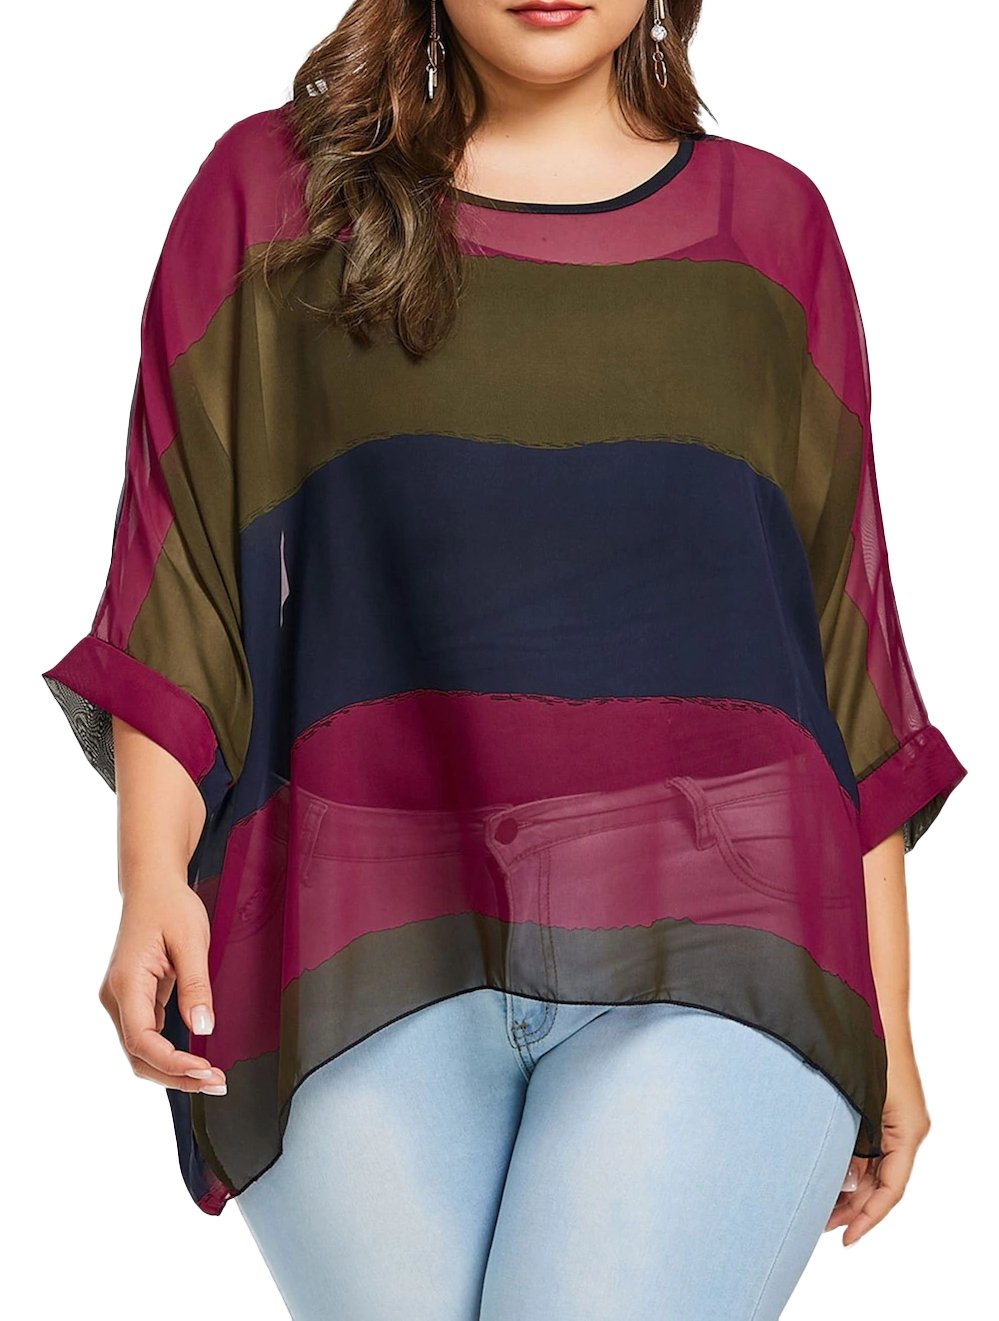 Fendxxxl Women's One Size Loose Casual Batwing Tops Chiffon Blouse Colorblock Shirt Tunics Rosered